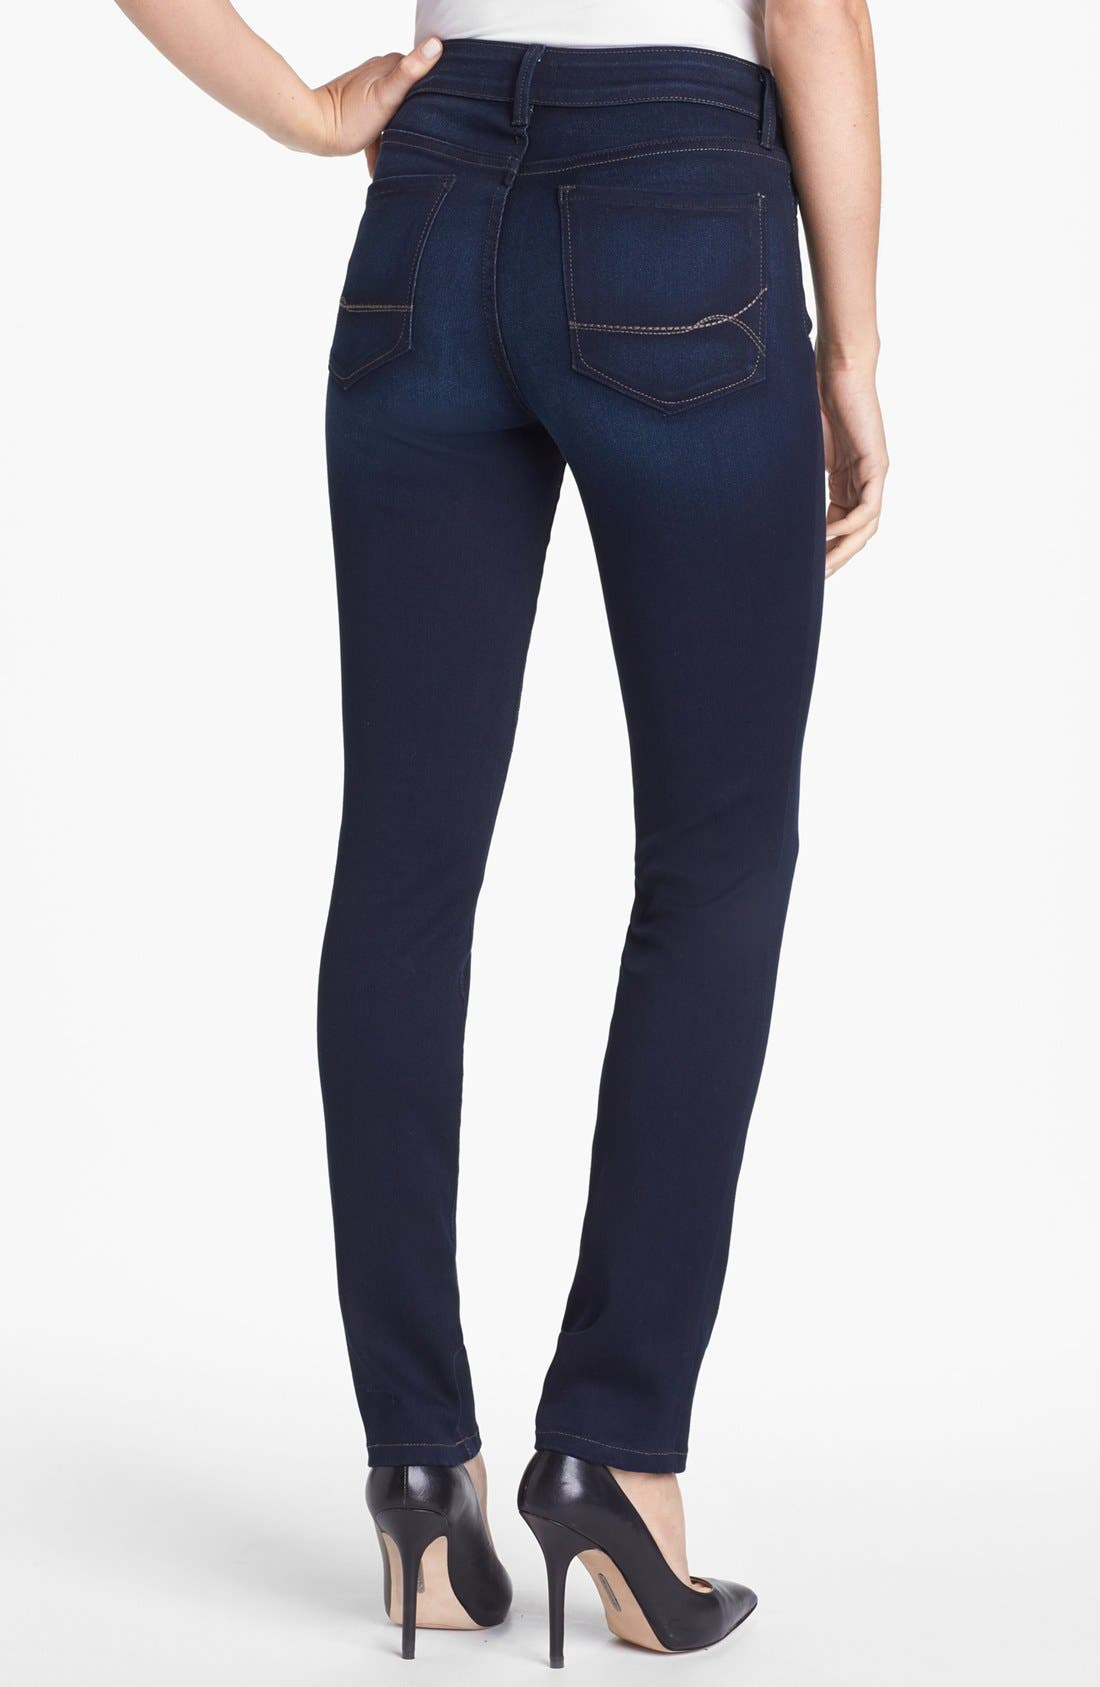 Alternate Image 3  - NYDJ 'Alina' Stretch Skinny Jeans (Pasadena) (Regular & Petite)